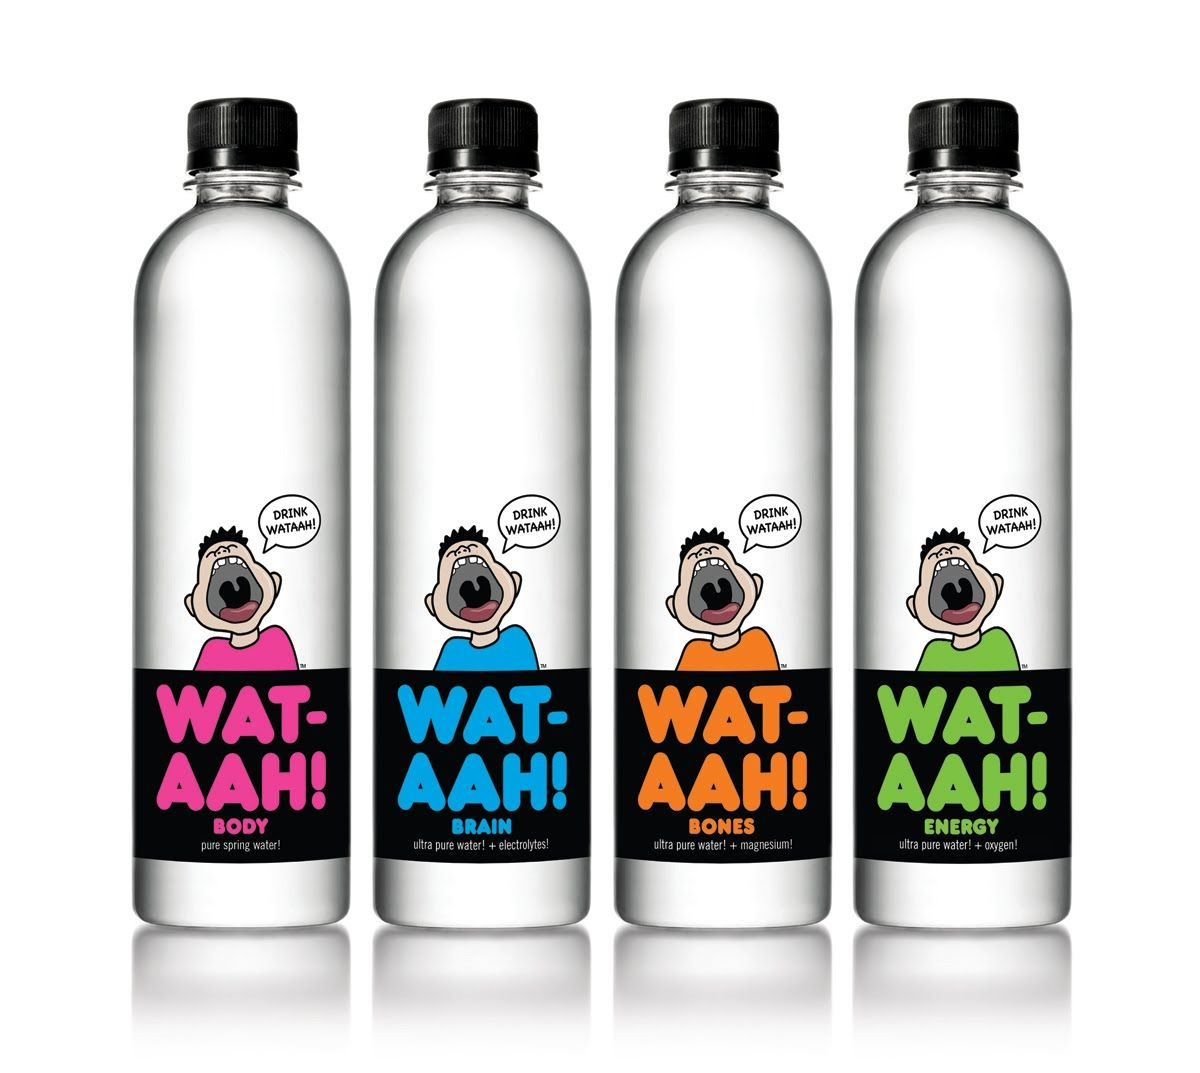 WAT-AAH! | Premium brands, Package design and Water packaging